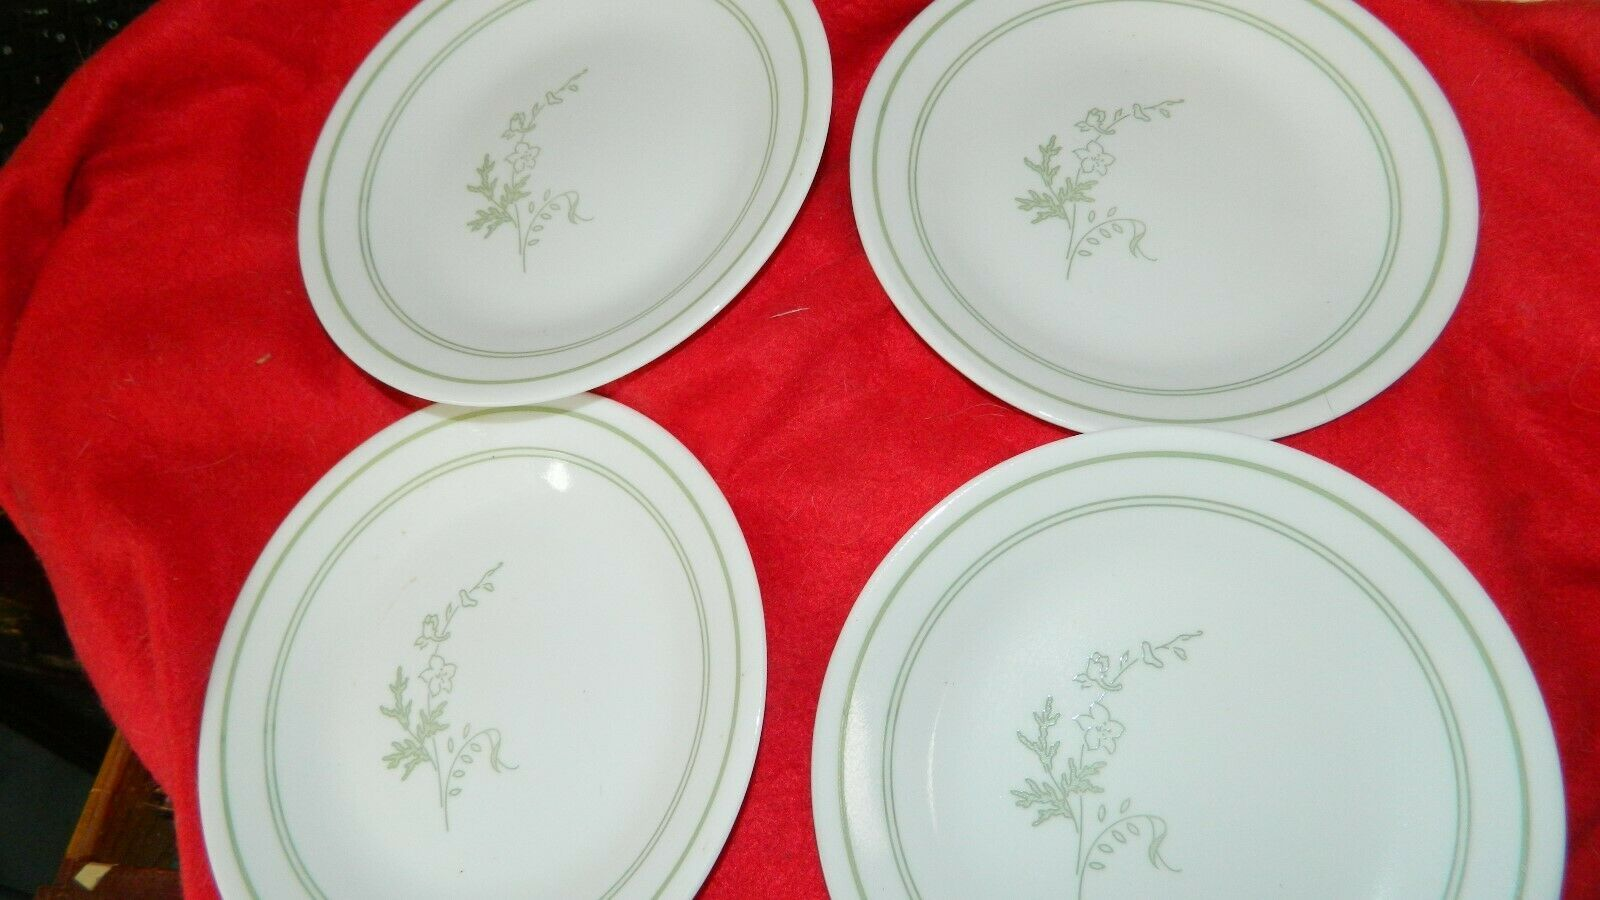 Primary image for CORELLE FLORAL SPRAY BREAD / DESSERT PLATES DISCONTINUED SET OF 4 FREE USA SHIP